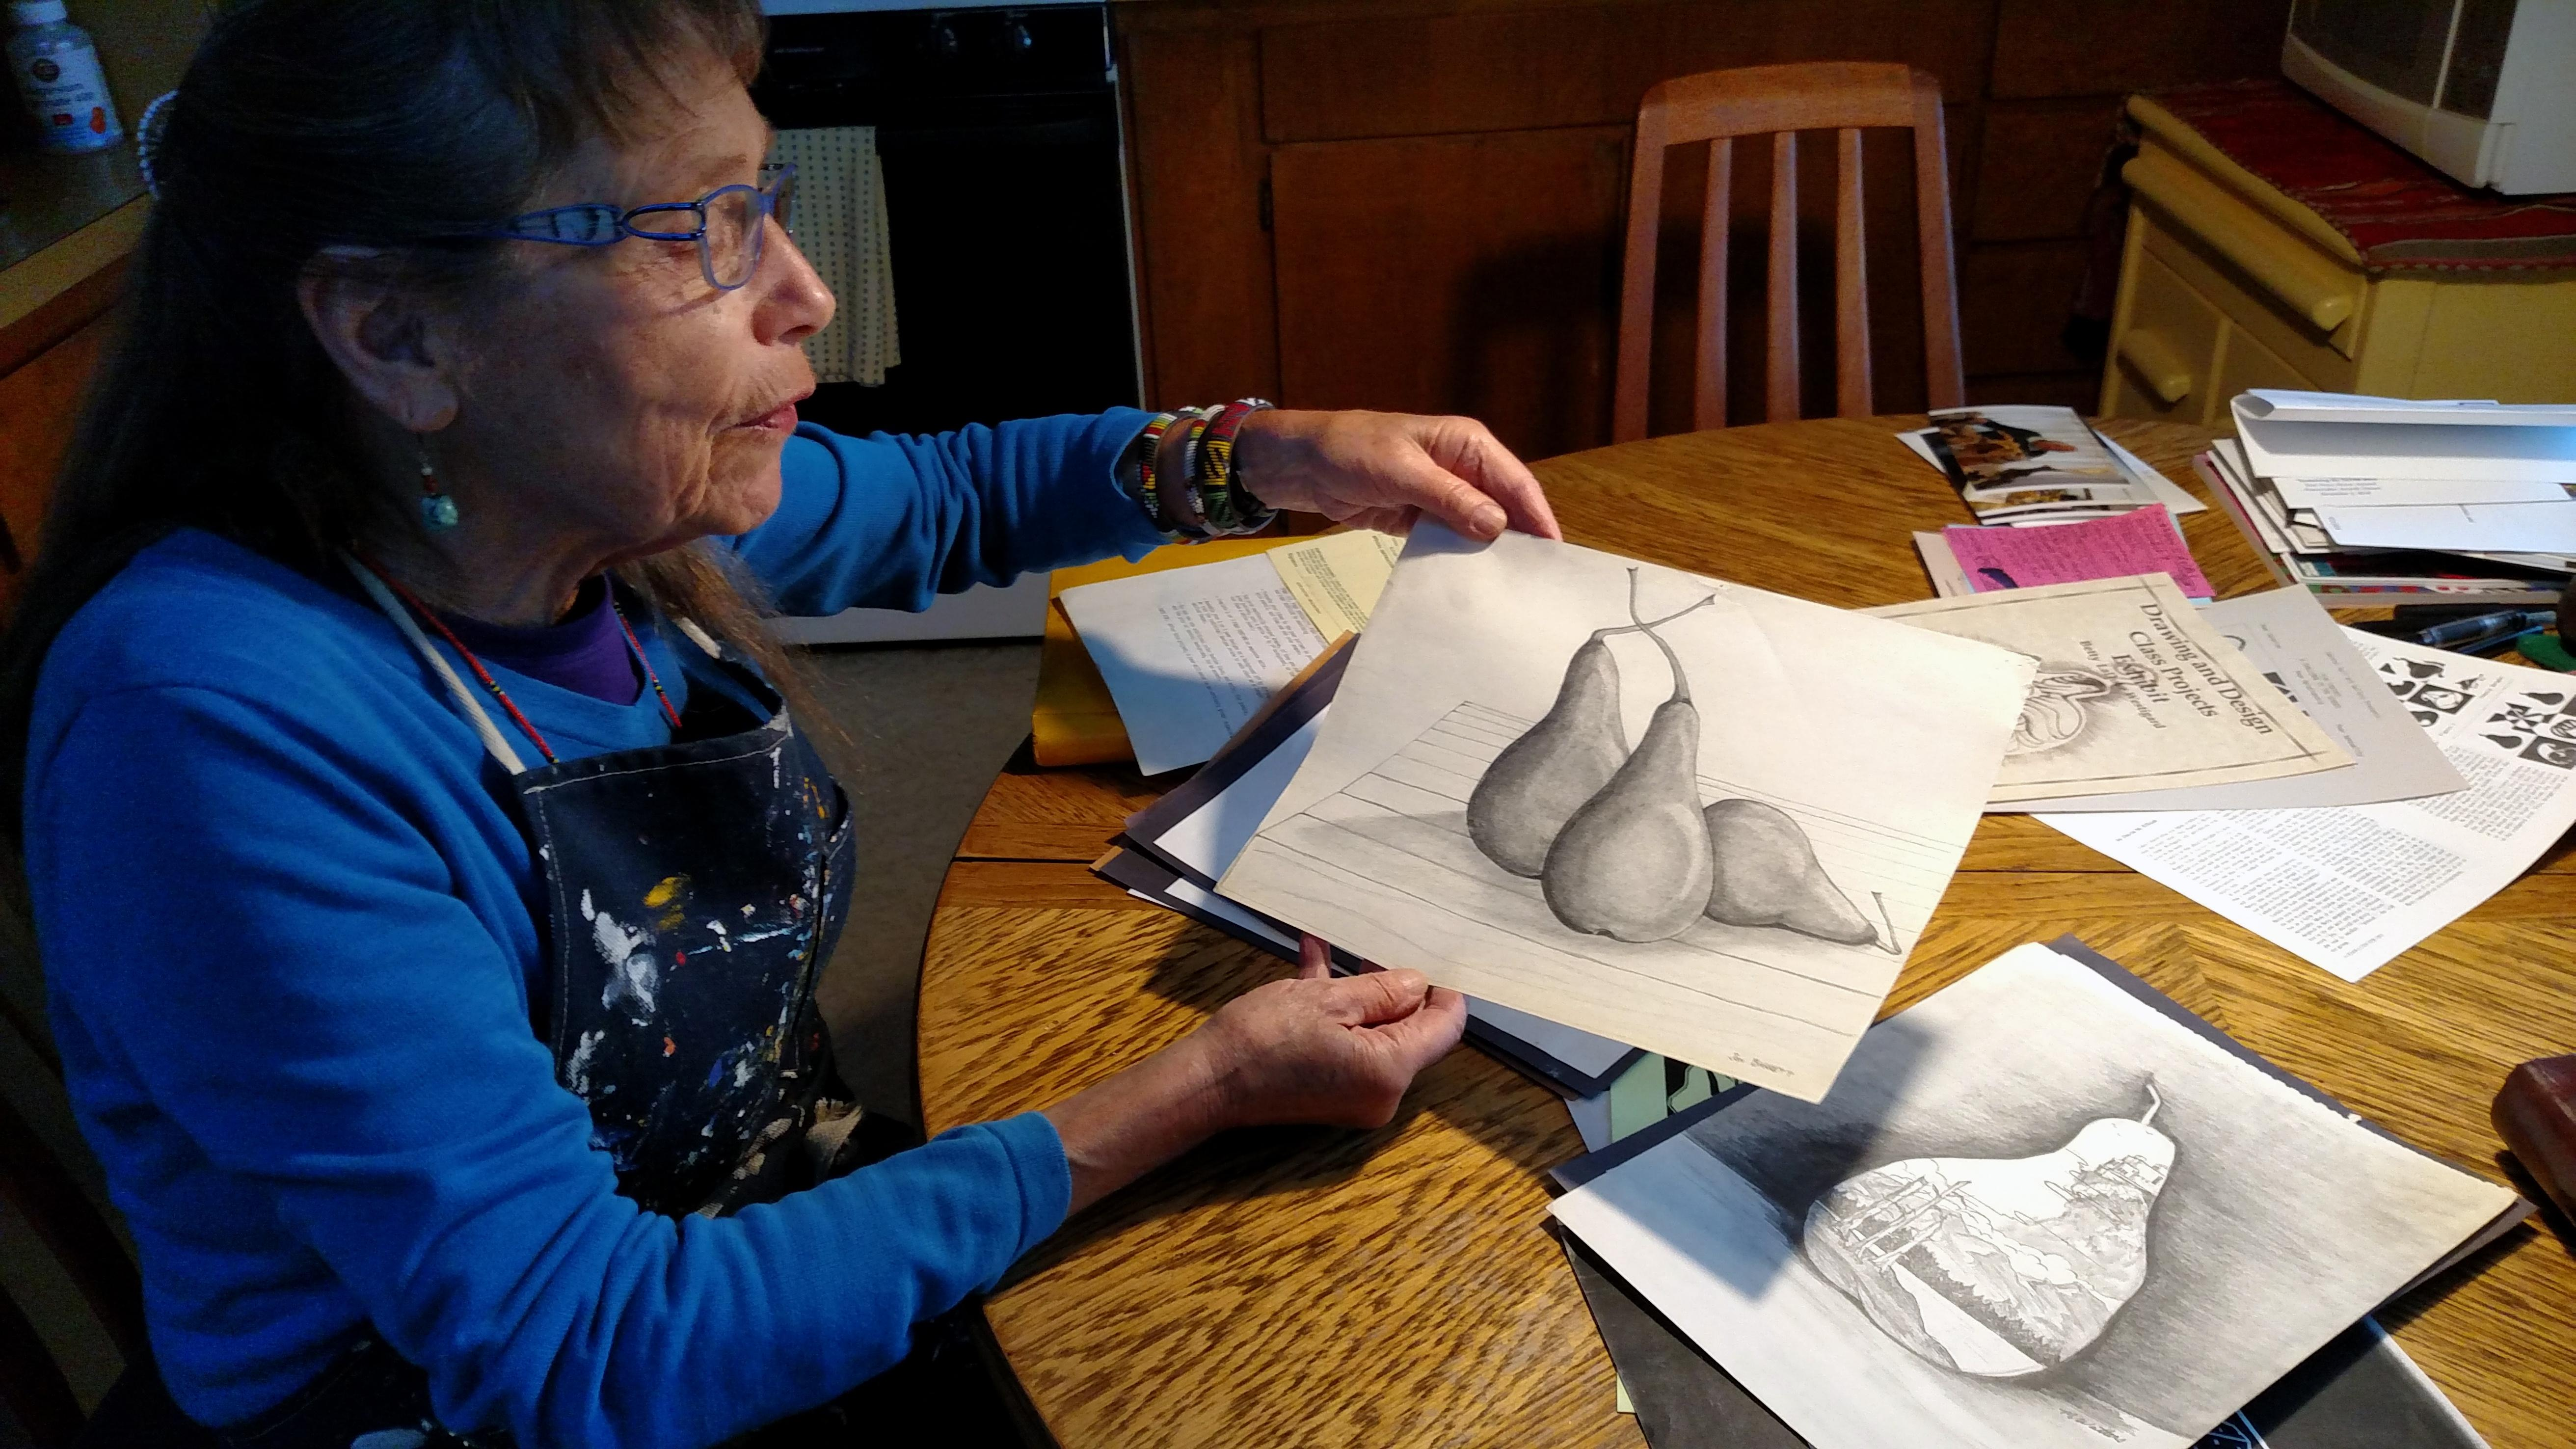 Peter Westigard would bring pears home for Betty's SOU art classes; the students had to finish their drawings of expressive pears before they could eat the fruit. Pear grower Ed Earnest would buy student sketches for $25 and hang them up in the hallway at Eden Valley Orchard when he owned that property. (Photo by Maureen Flanagan Battistella)